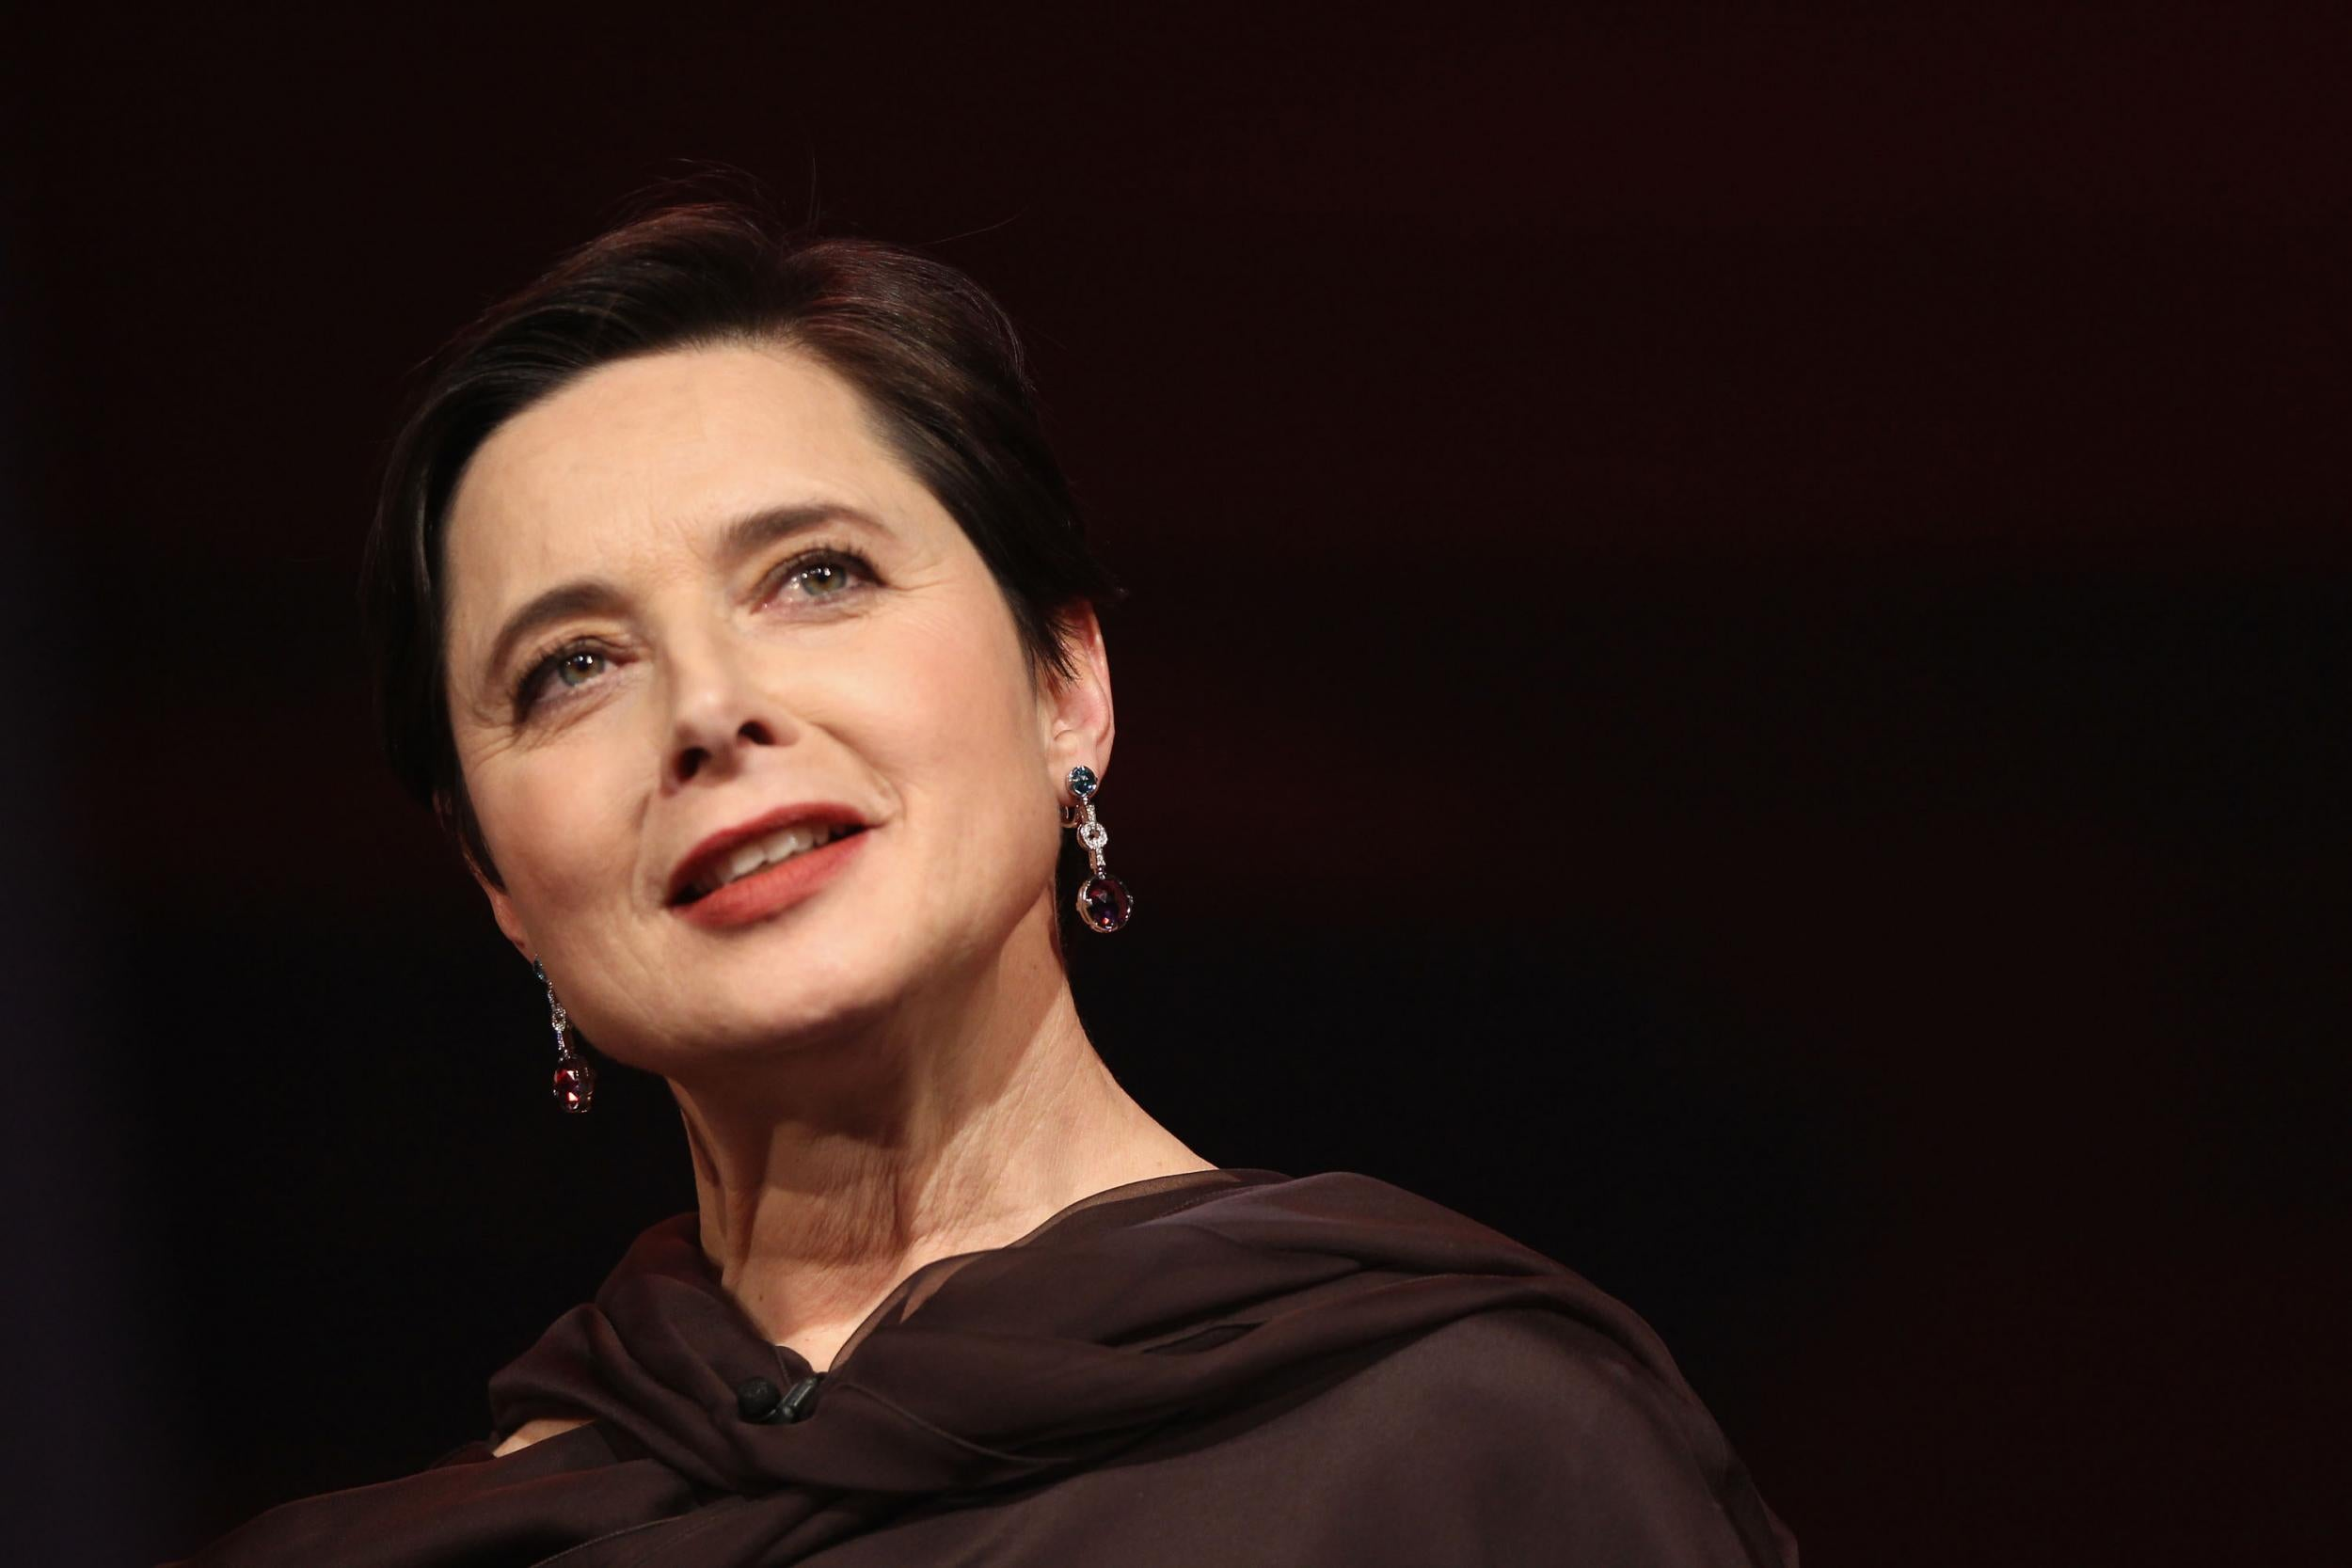 Isabella Rossellini on the worst age to work in Hollywood as a woman